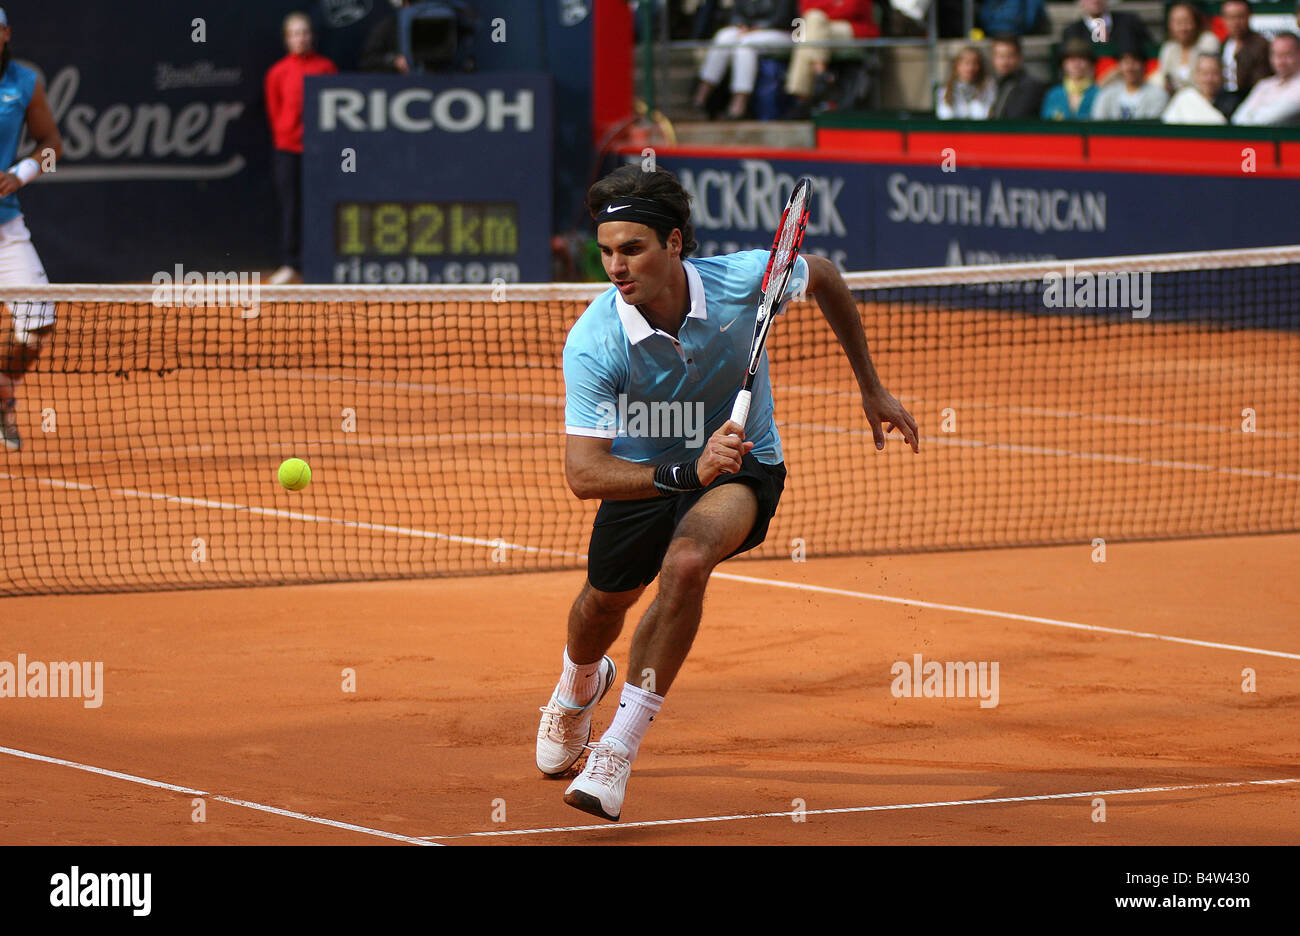 Roger Federer (SUI) in action against Rafael Nadal (ESP) ATP Masters Series tennis tournament in Hamburg Germany - Stock Image